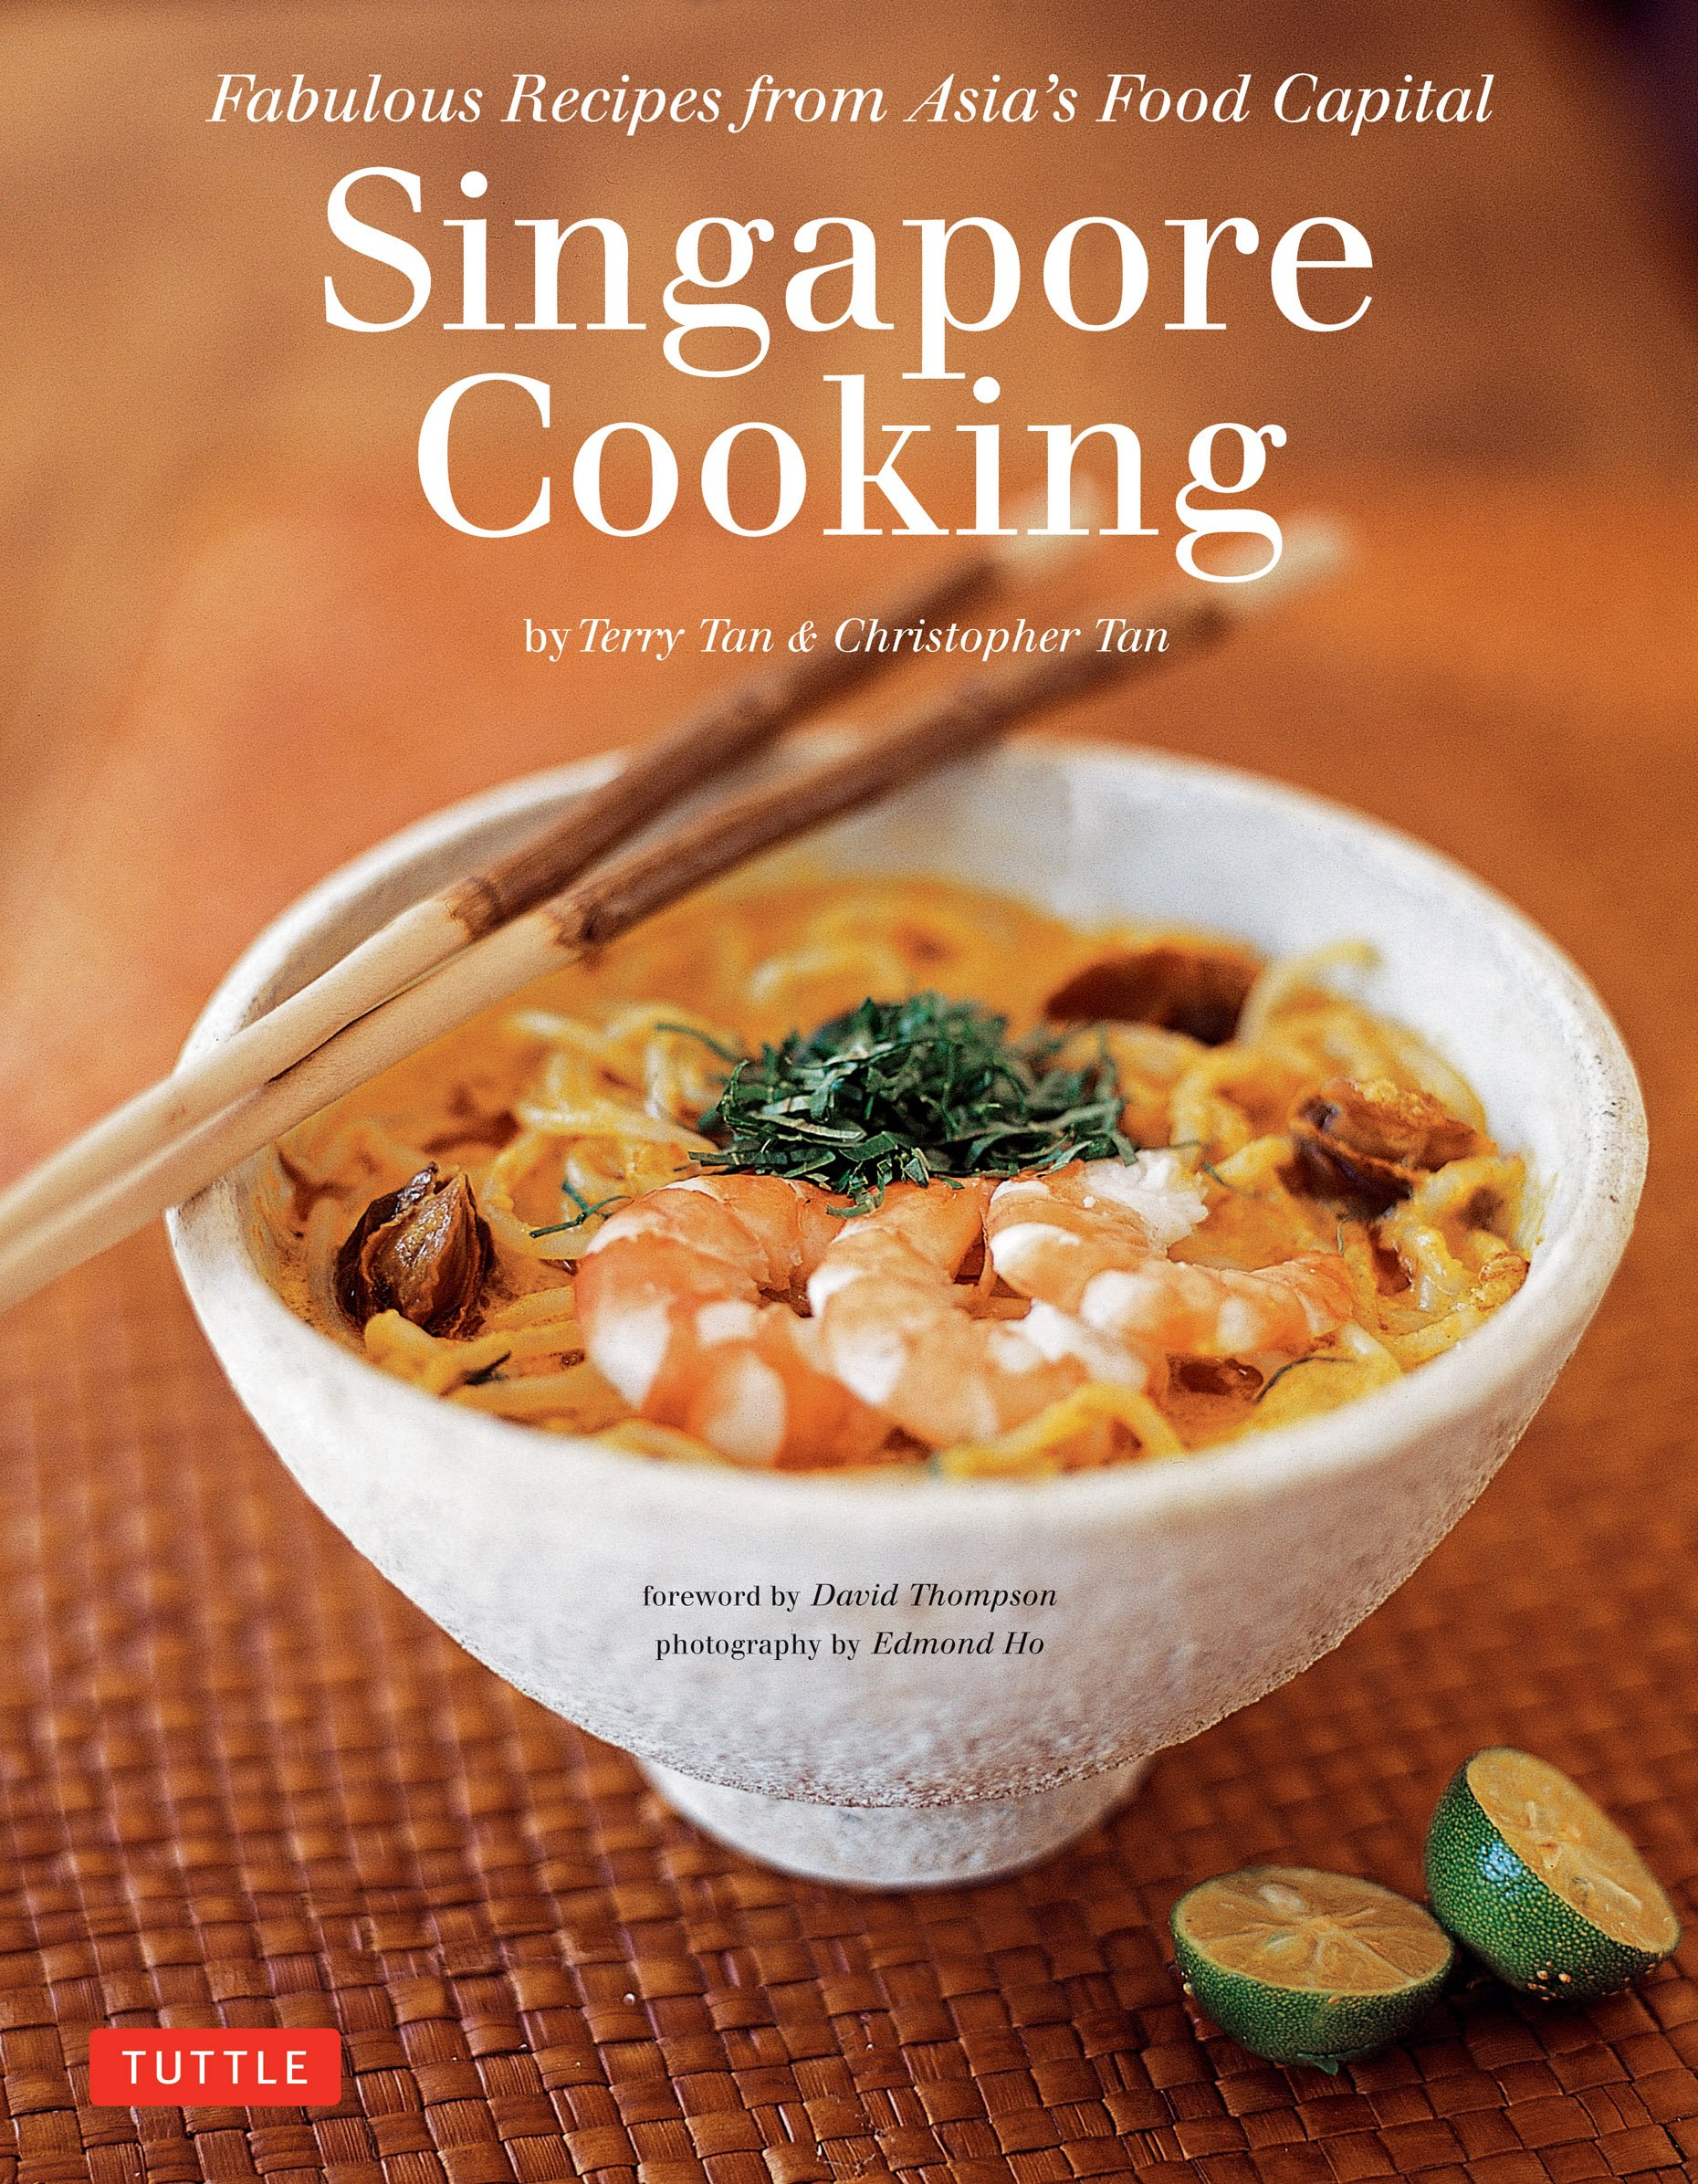 Download Singapore Cooking: Fabulous Recipes from Asia's Food Capital [Singapore Cookbook, 111 Recipes] ebook